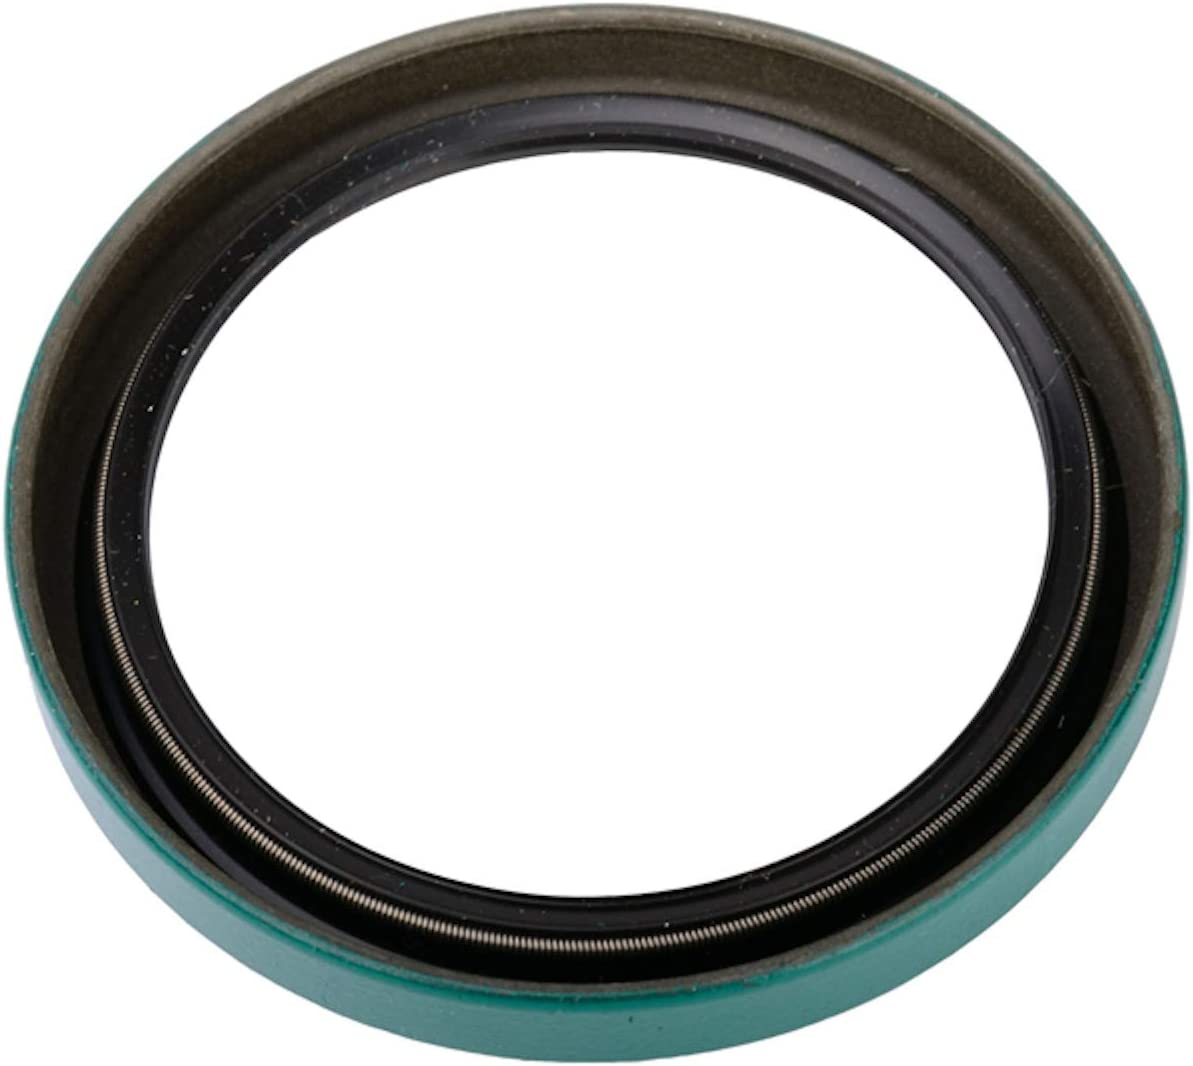 SKF 19745 LDS & Small Bore Seal, P Lip Code, CRW1 Style, Inch, 2